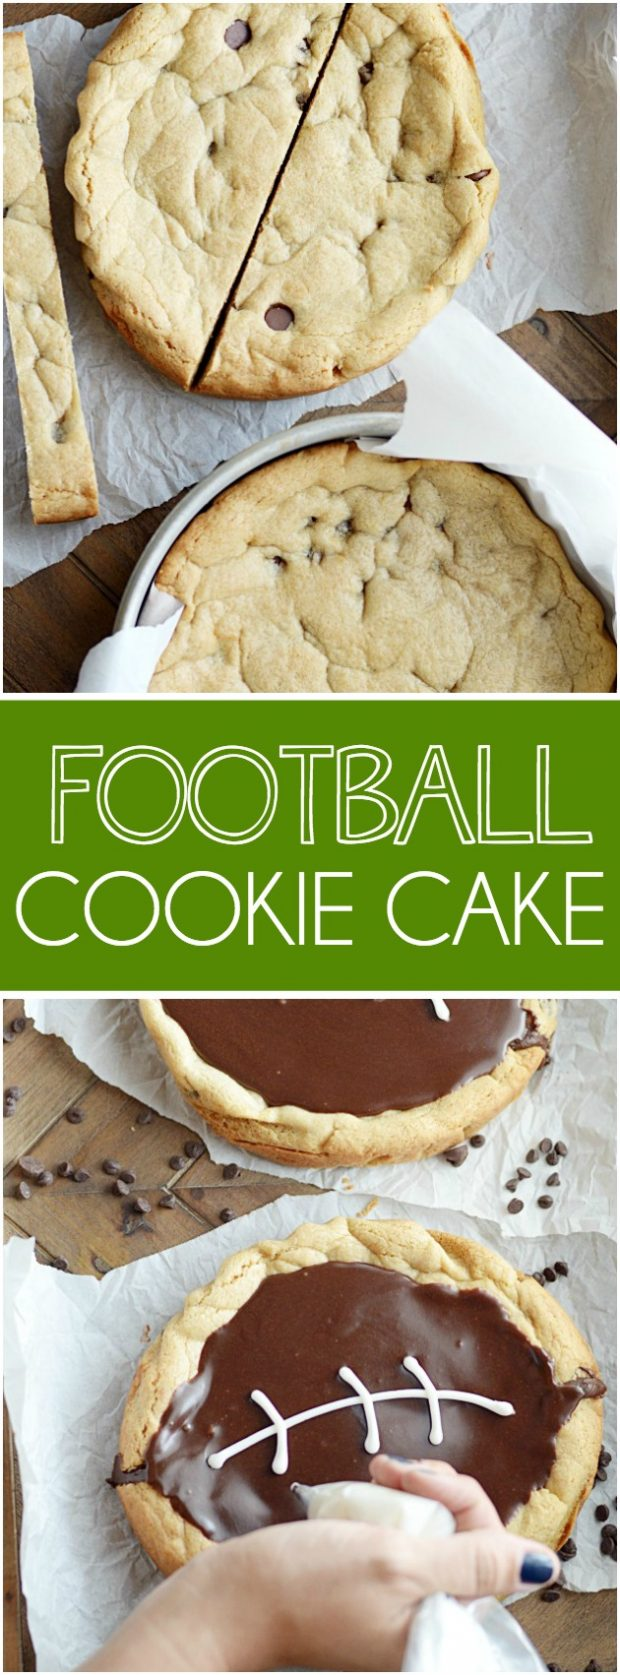 Be the hero of your tailgating parties this weekend! Bake my Quick & Easy Chocolate Chip Cookie recipe into 2 round cake pans, make a quick cut in the middle plus frosting, and voila! A football cookie cake in no time.